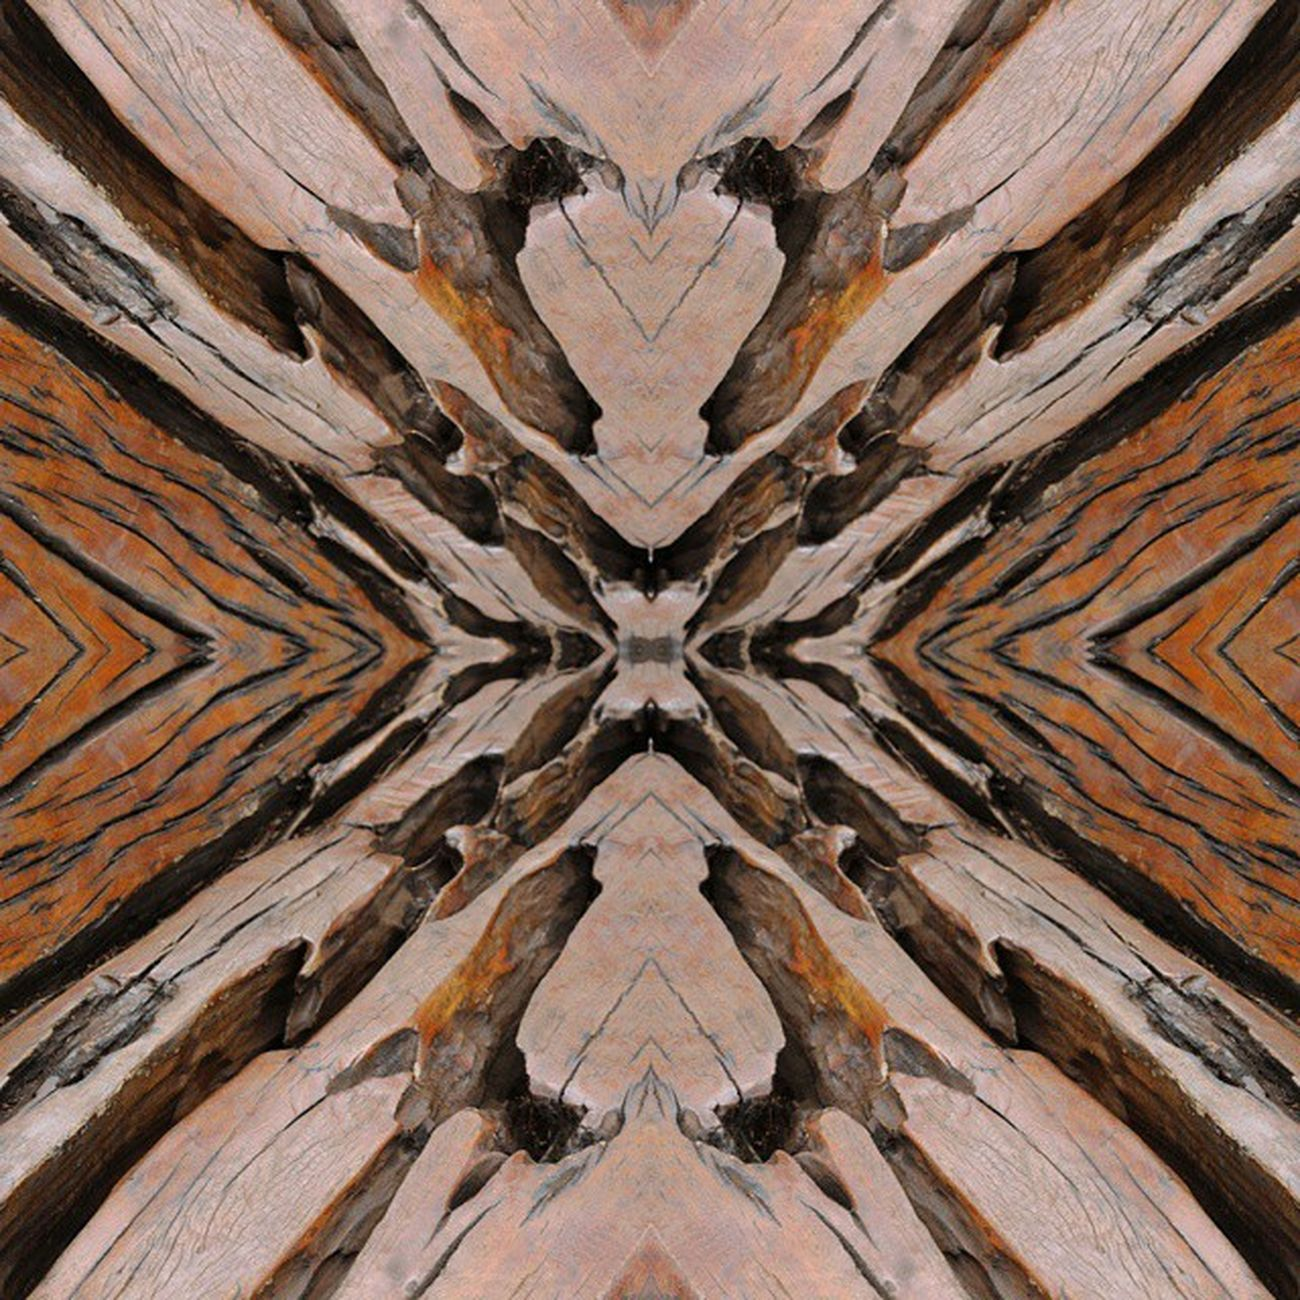 MIRRORS Tronco Arvore Inhotim Minasgerais tree trunk photoshop photo mirrorphoto mirrors